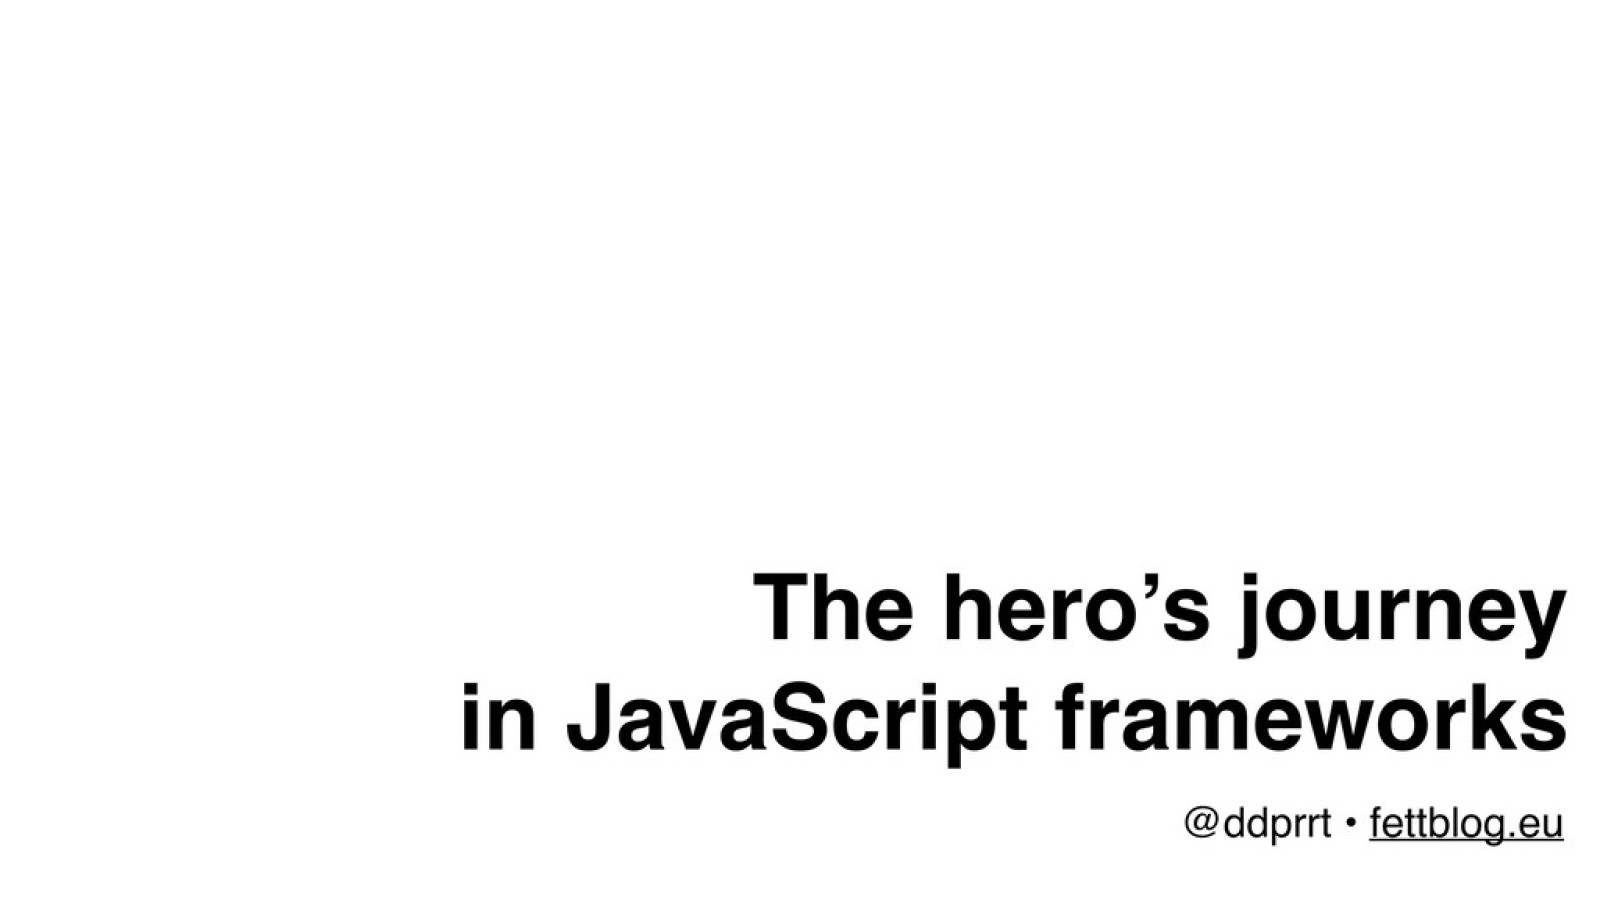 The hero's journey in JavaScript frameworks